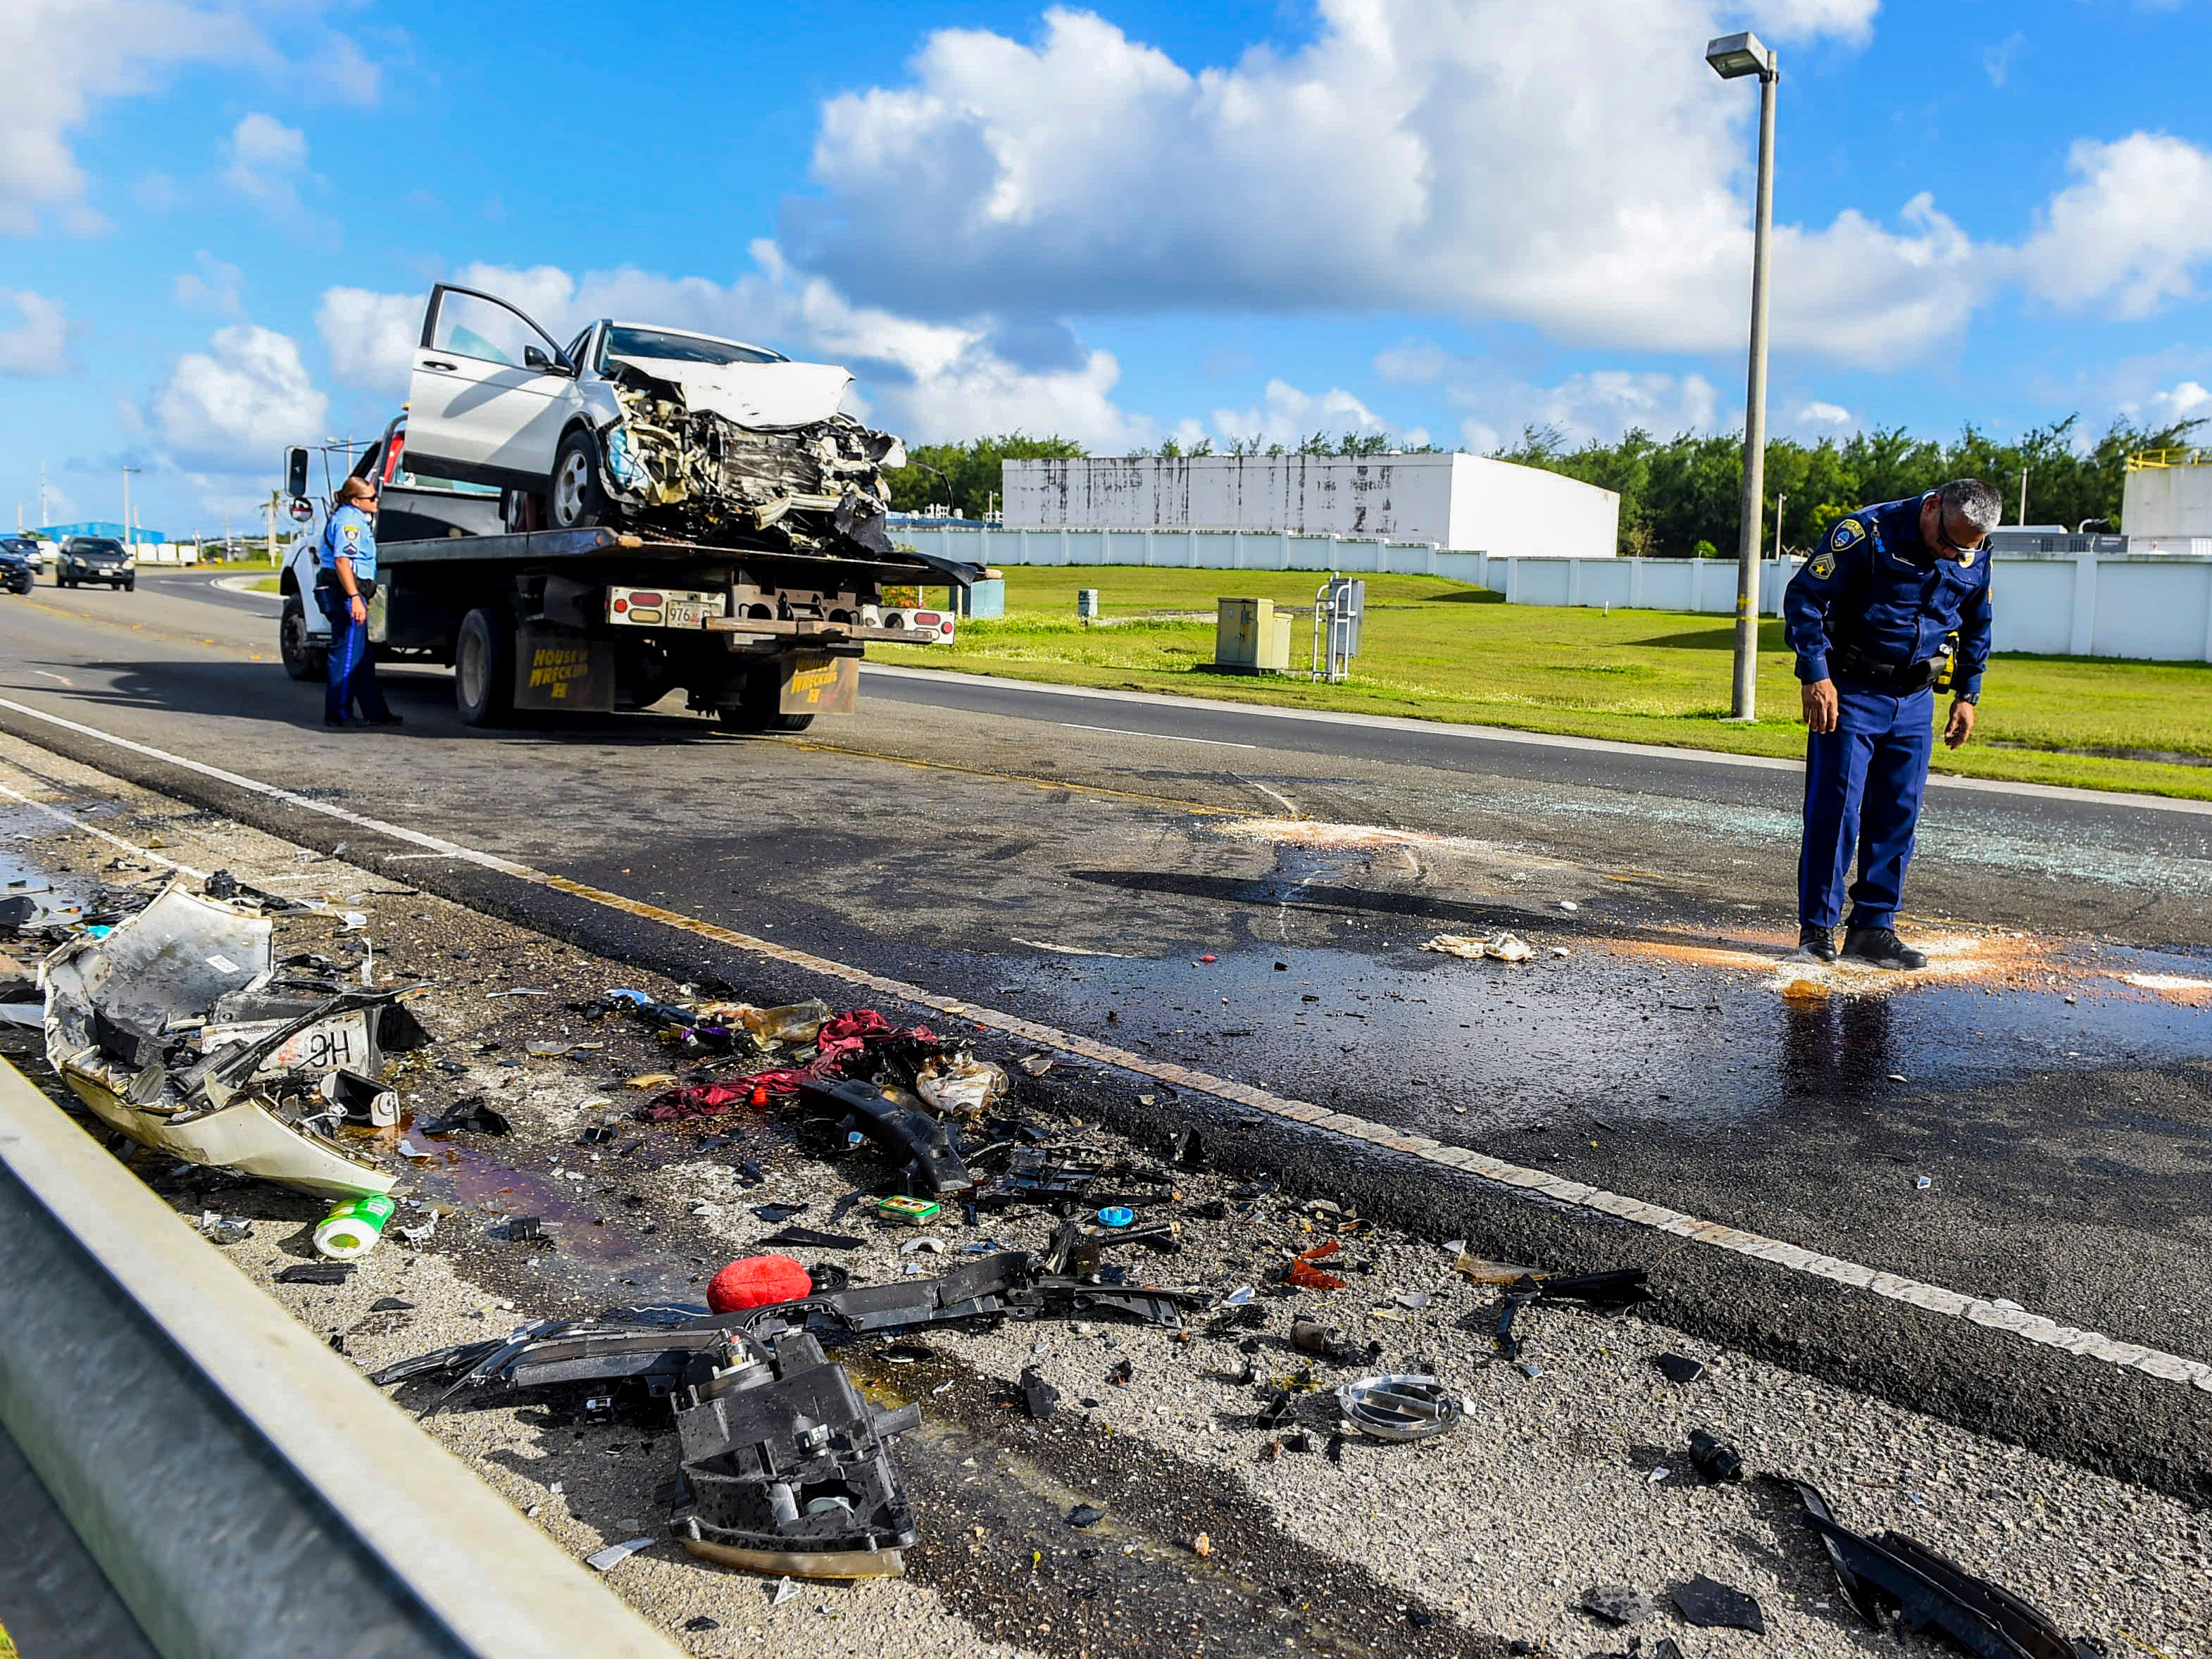 A Nissan Frontier pickup, involved in a two-car collision, can be seen loaded on vehicle transports as Guam Police Department officers conduct an investigation of the crash on Route 10A in Barrigada, Jan. 6, 2019.